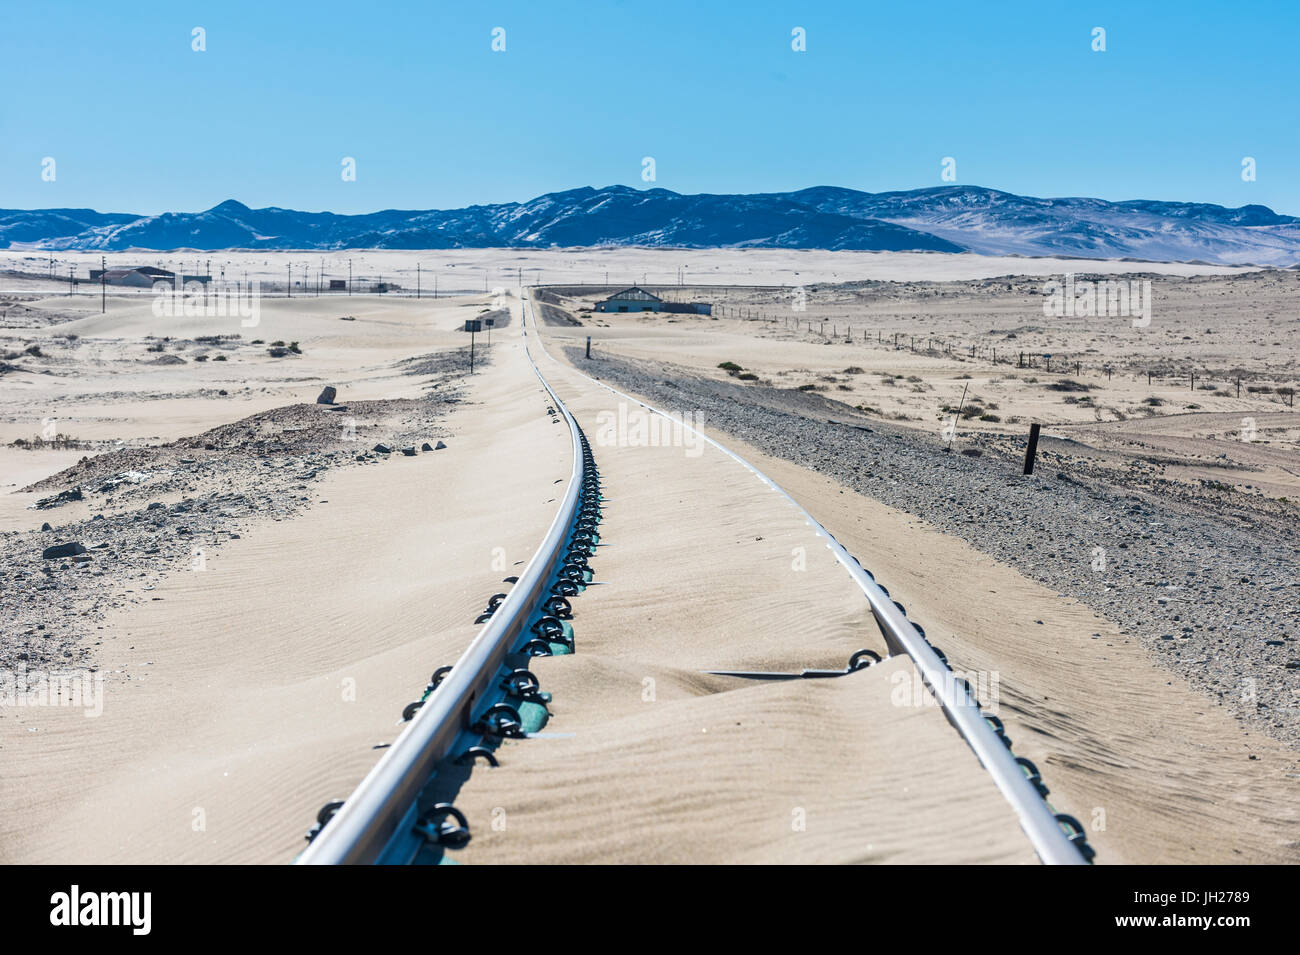 Railway tracks overflown by sand, old diamond ghost town, Kolmanskop, near Luderitz, Namibia, Africa - Stock Image